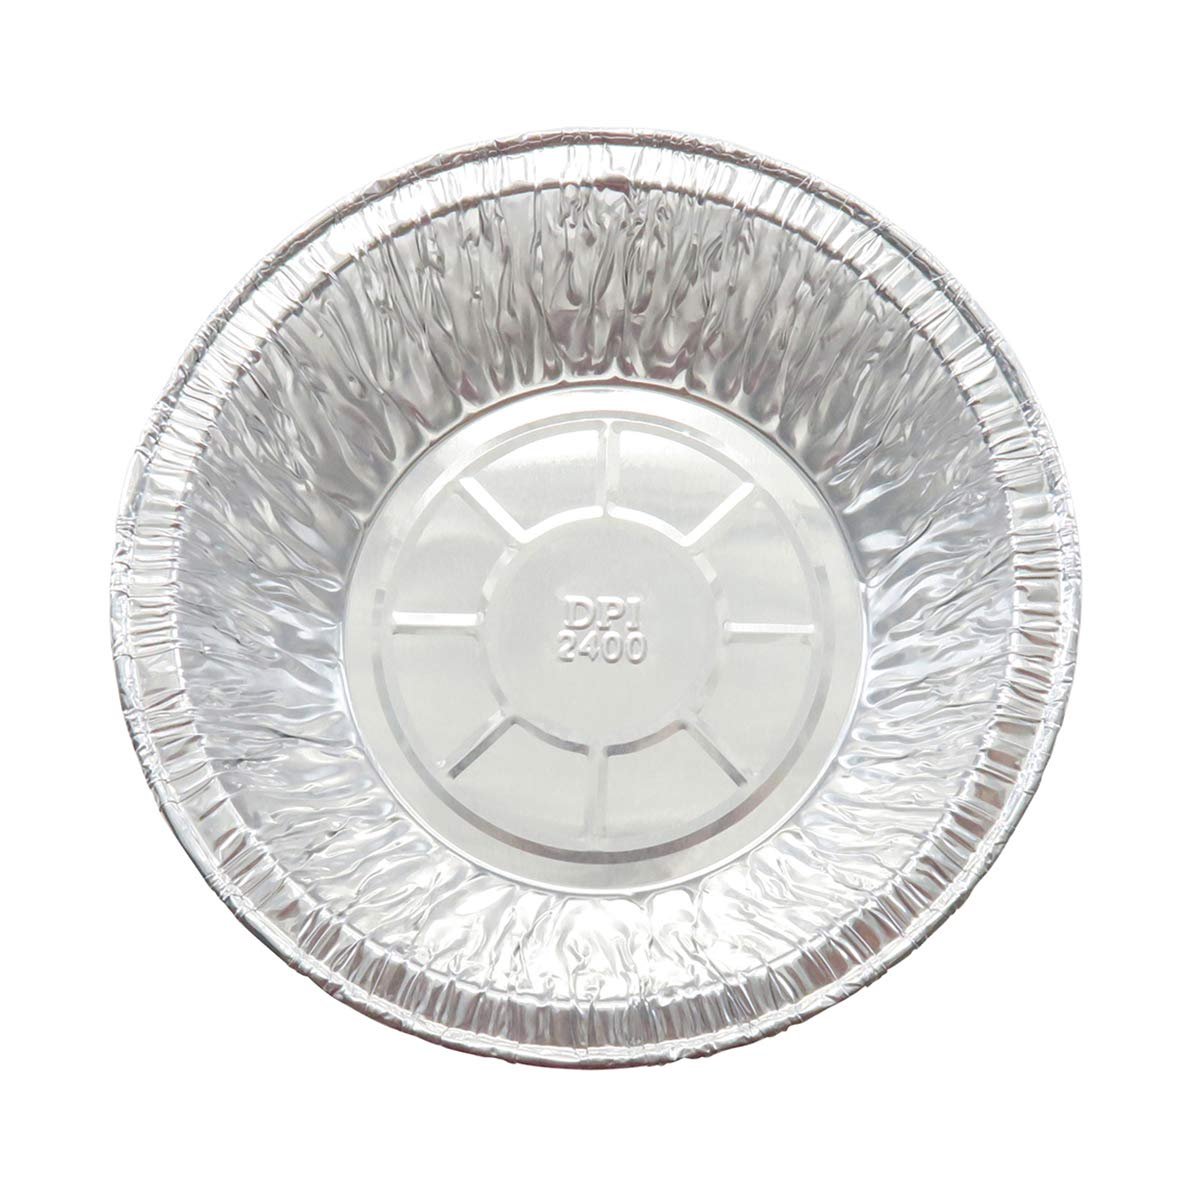 Disposable Aluminum 5 3/4 Extra Deep Meat/Pot Pie Pan #2400 (100) by KitchenDance (Image #4)